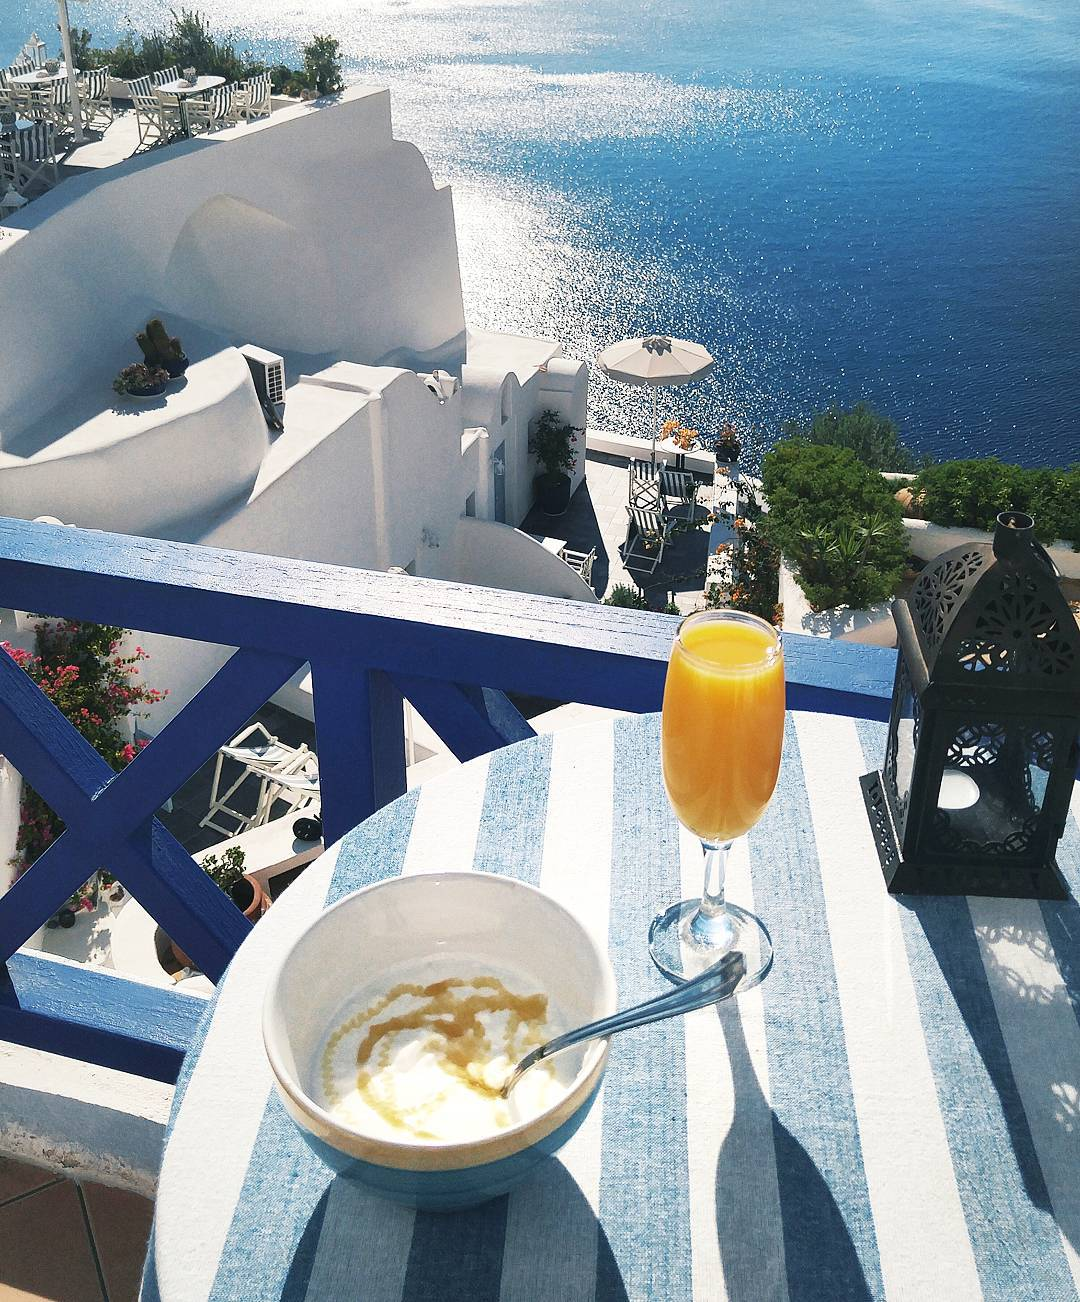 Where to find the best breakfast in Oia, Santorini